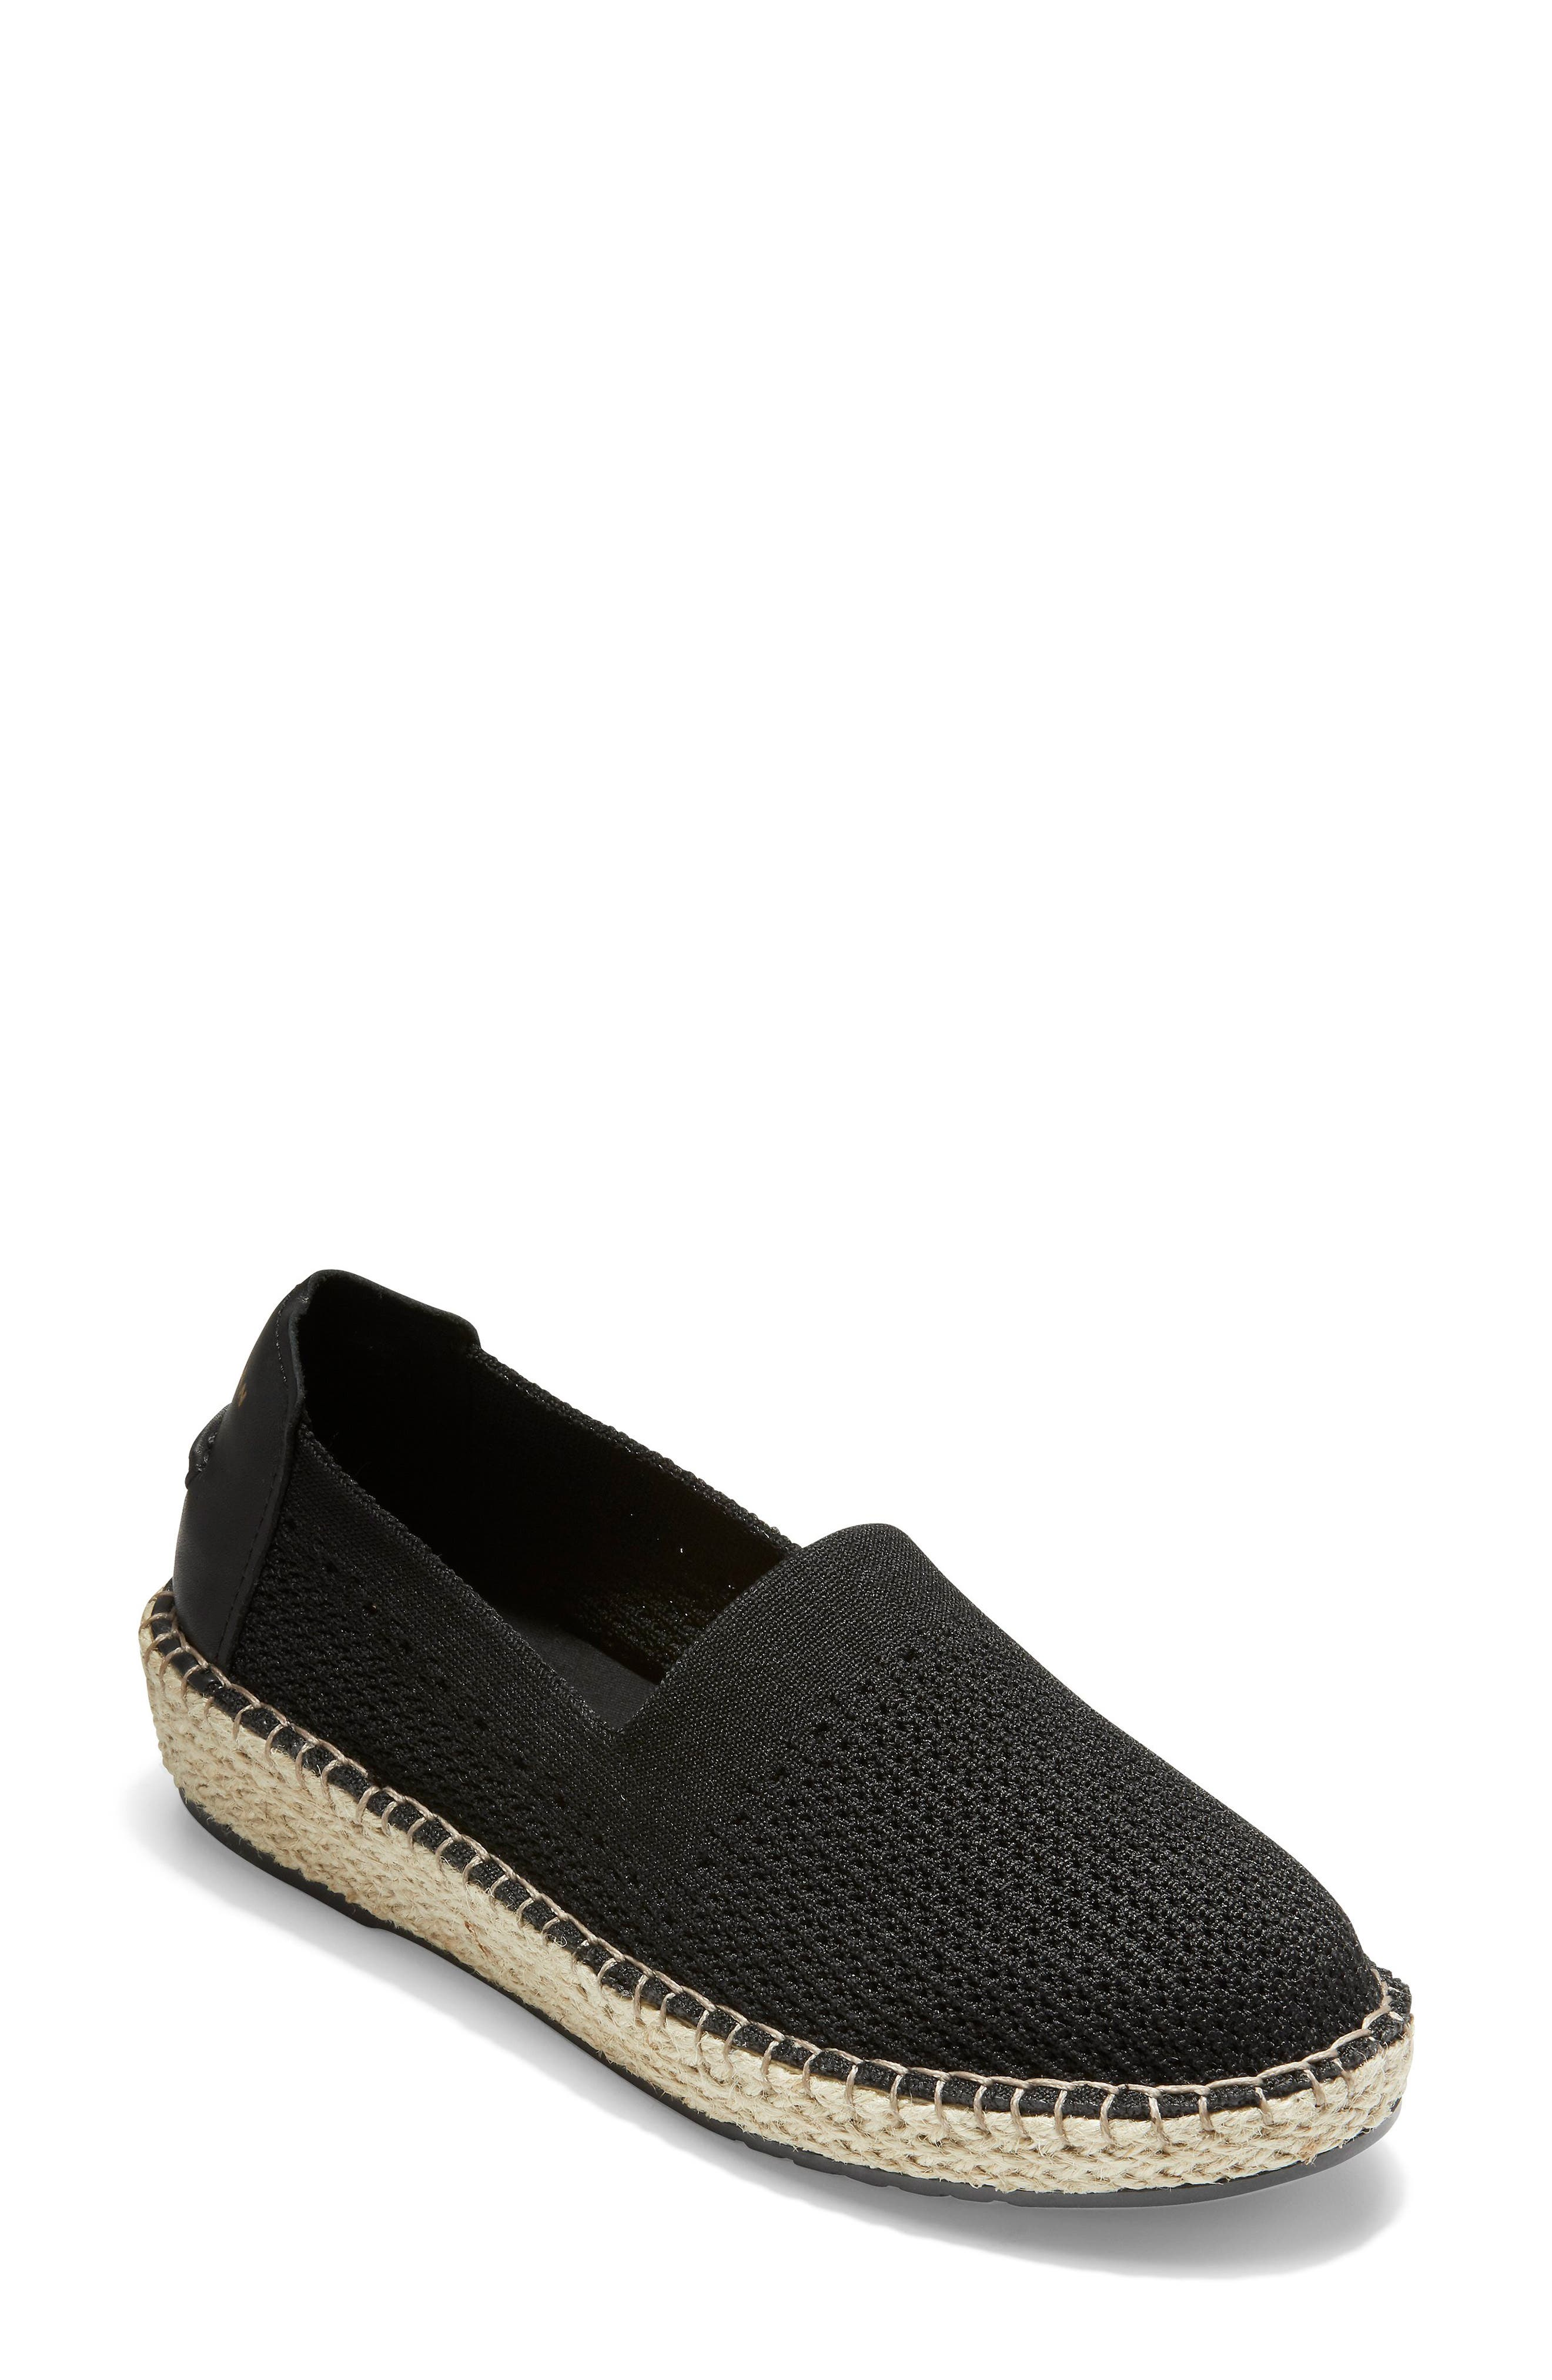 Cole Haan Cloudfeel Stitchlite Espadrille (Women)